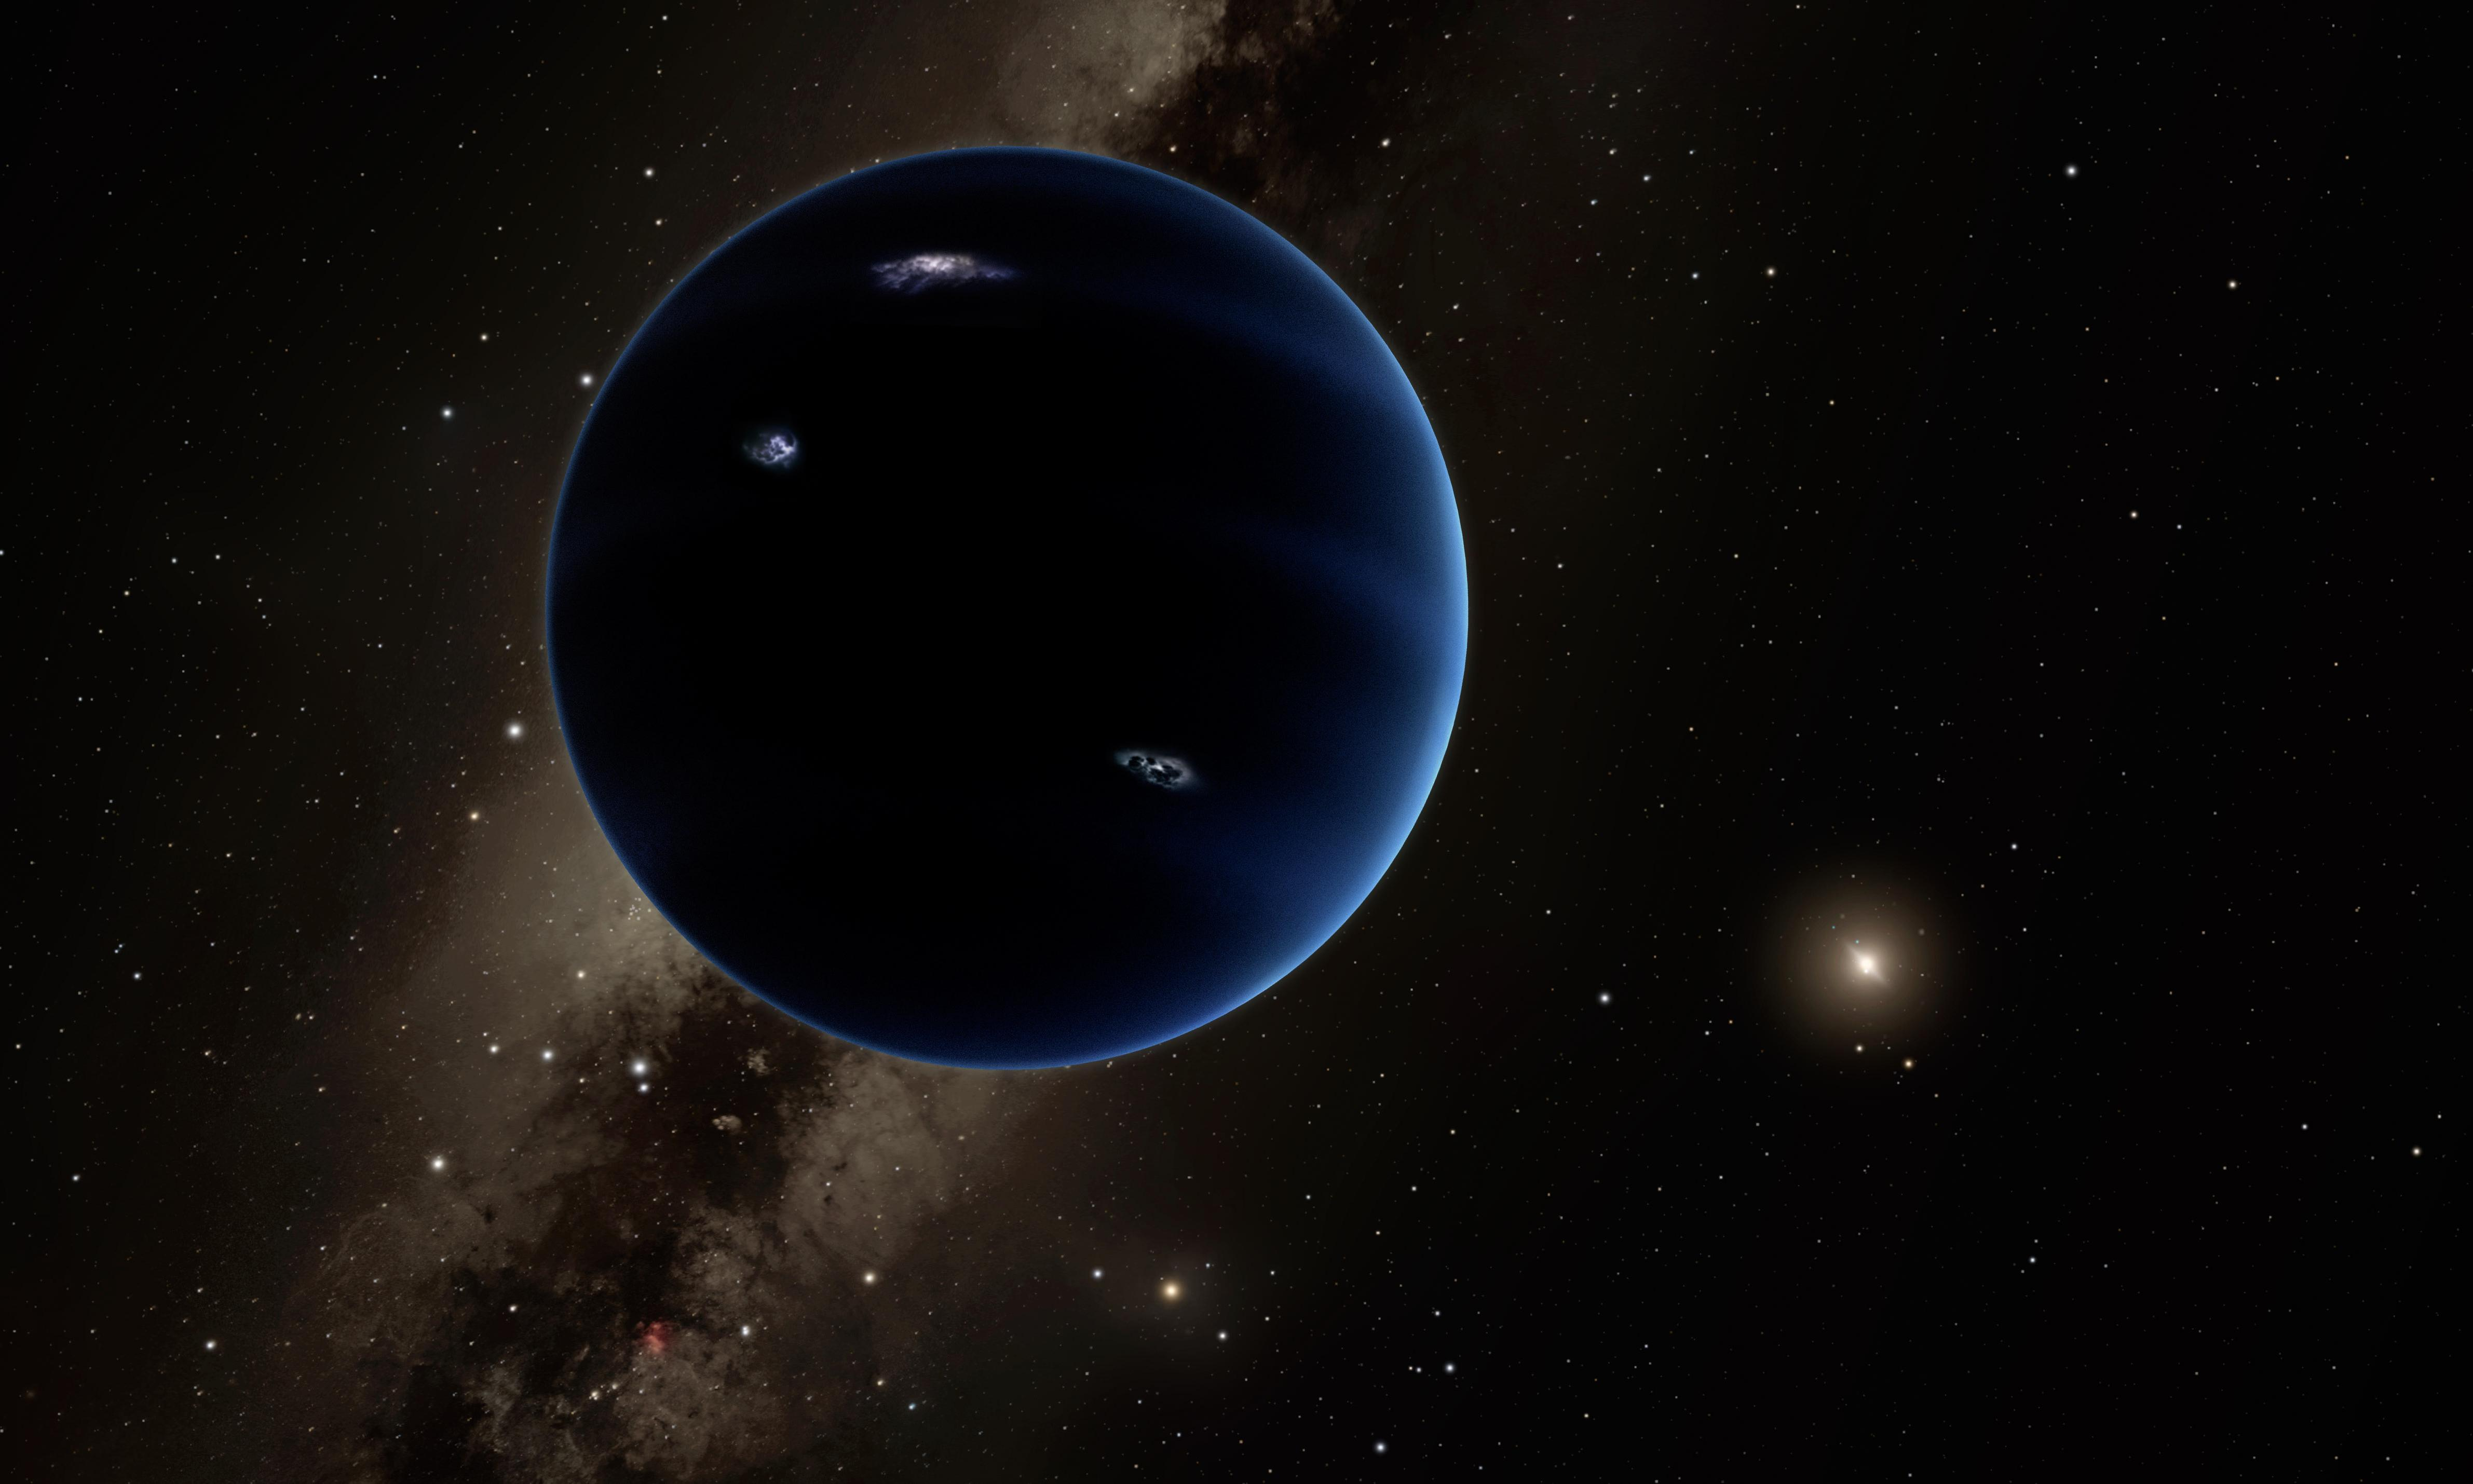 Planet Nine from outer space: is there another world beyond Neptune?